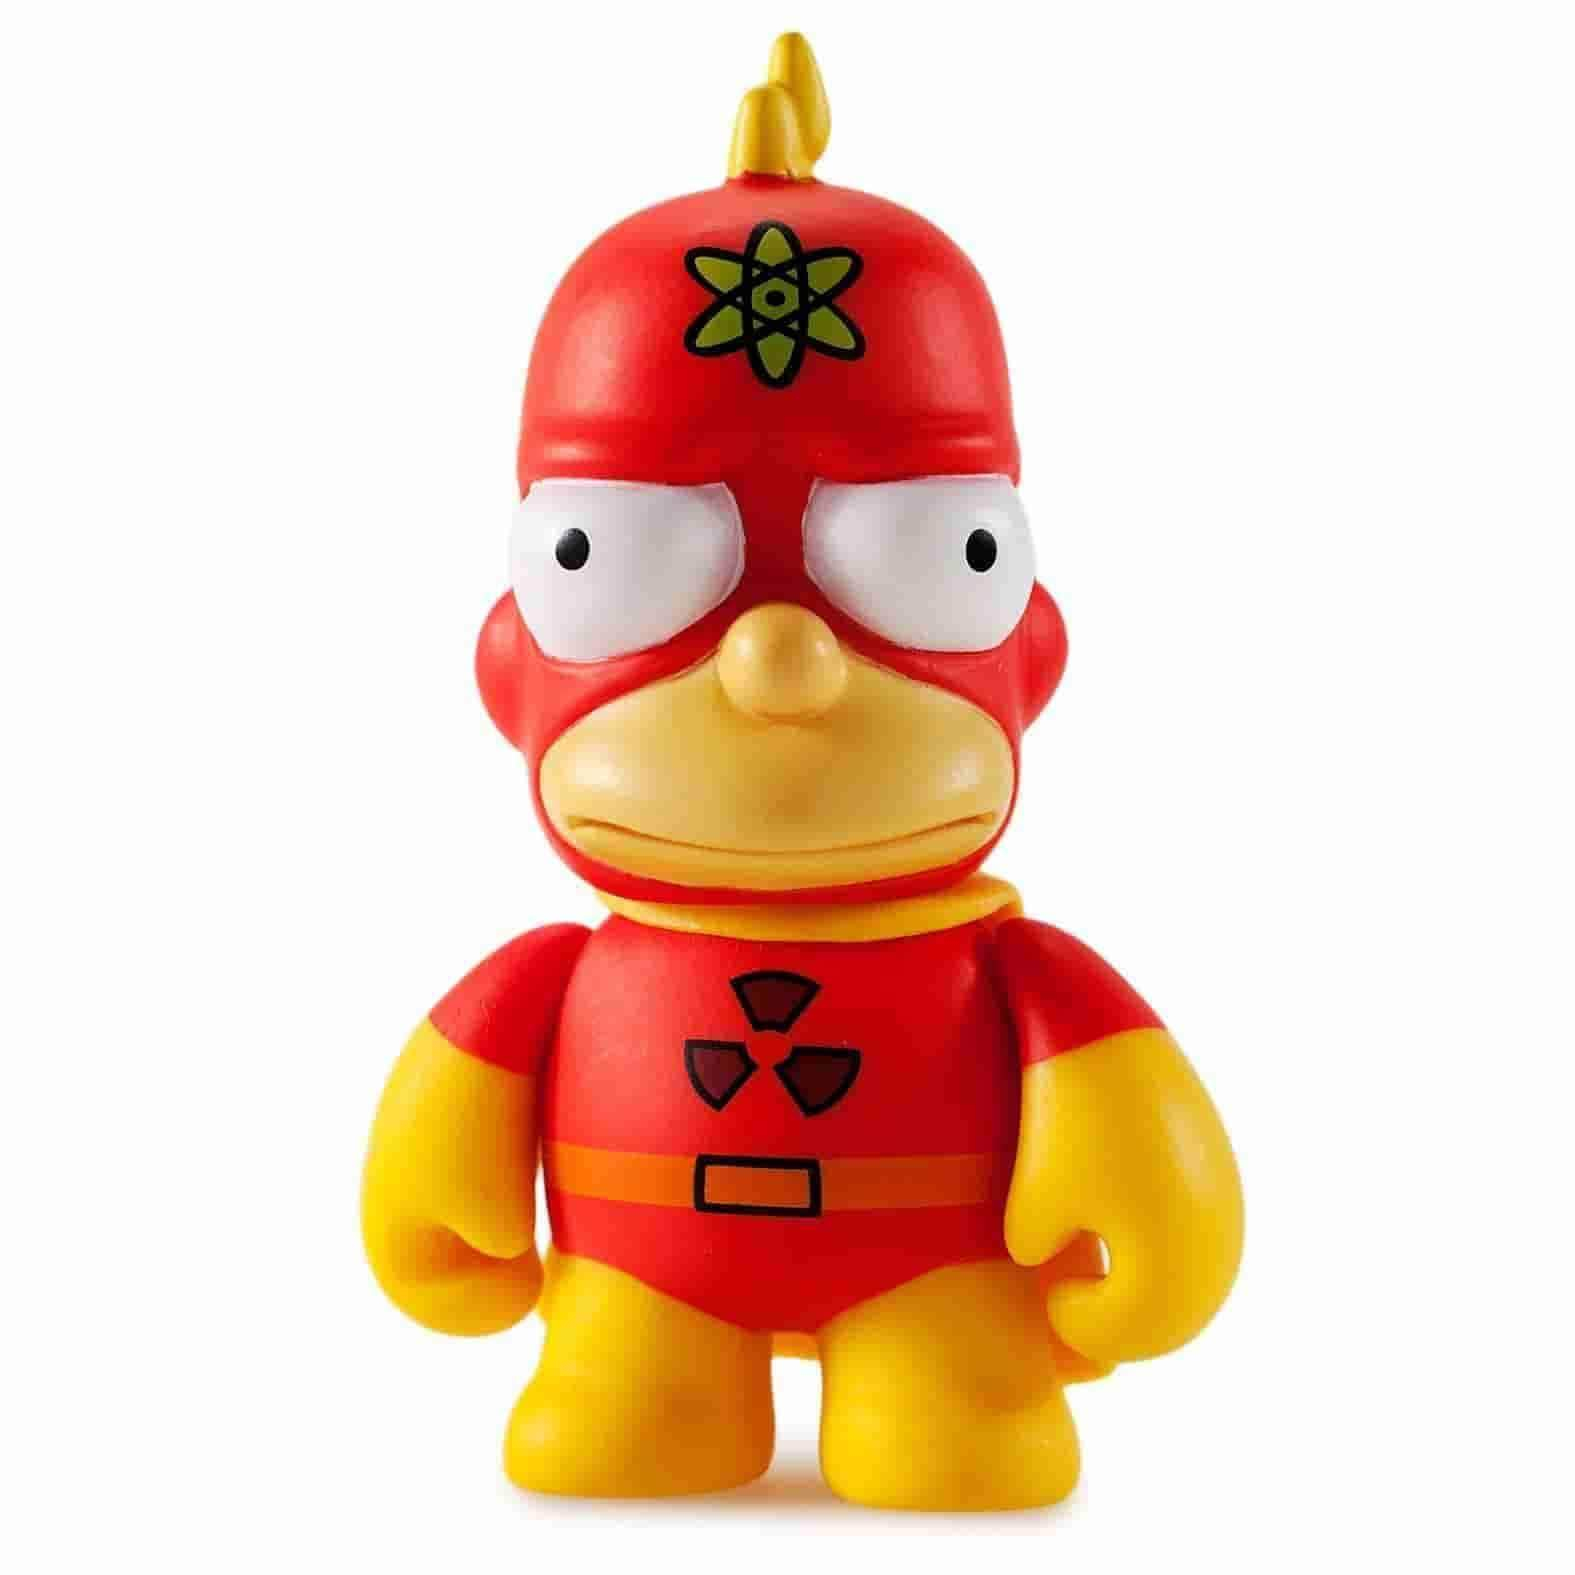 Radioactive Man Simpsons 25th Anniversary Vinyl Mini Series by Kidrobot - IamRetro.com